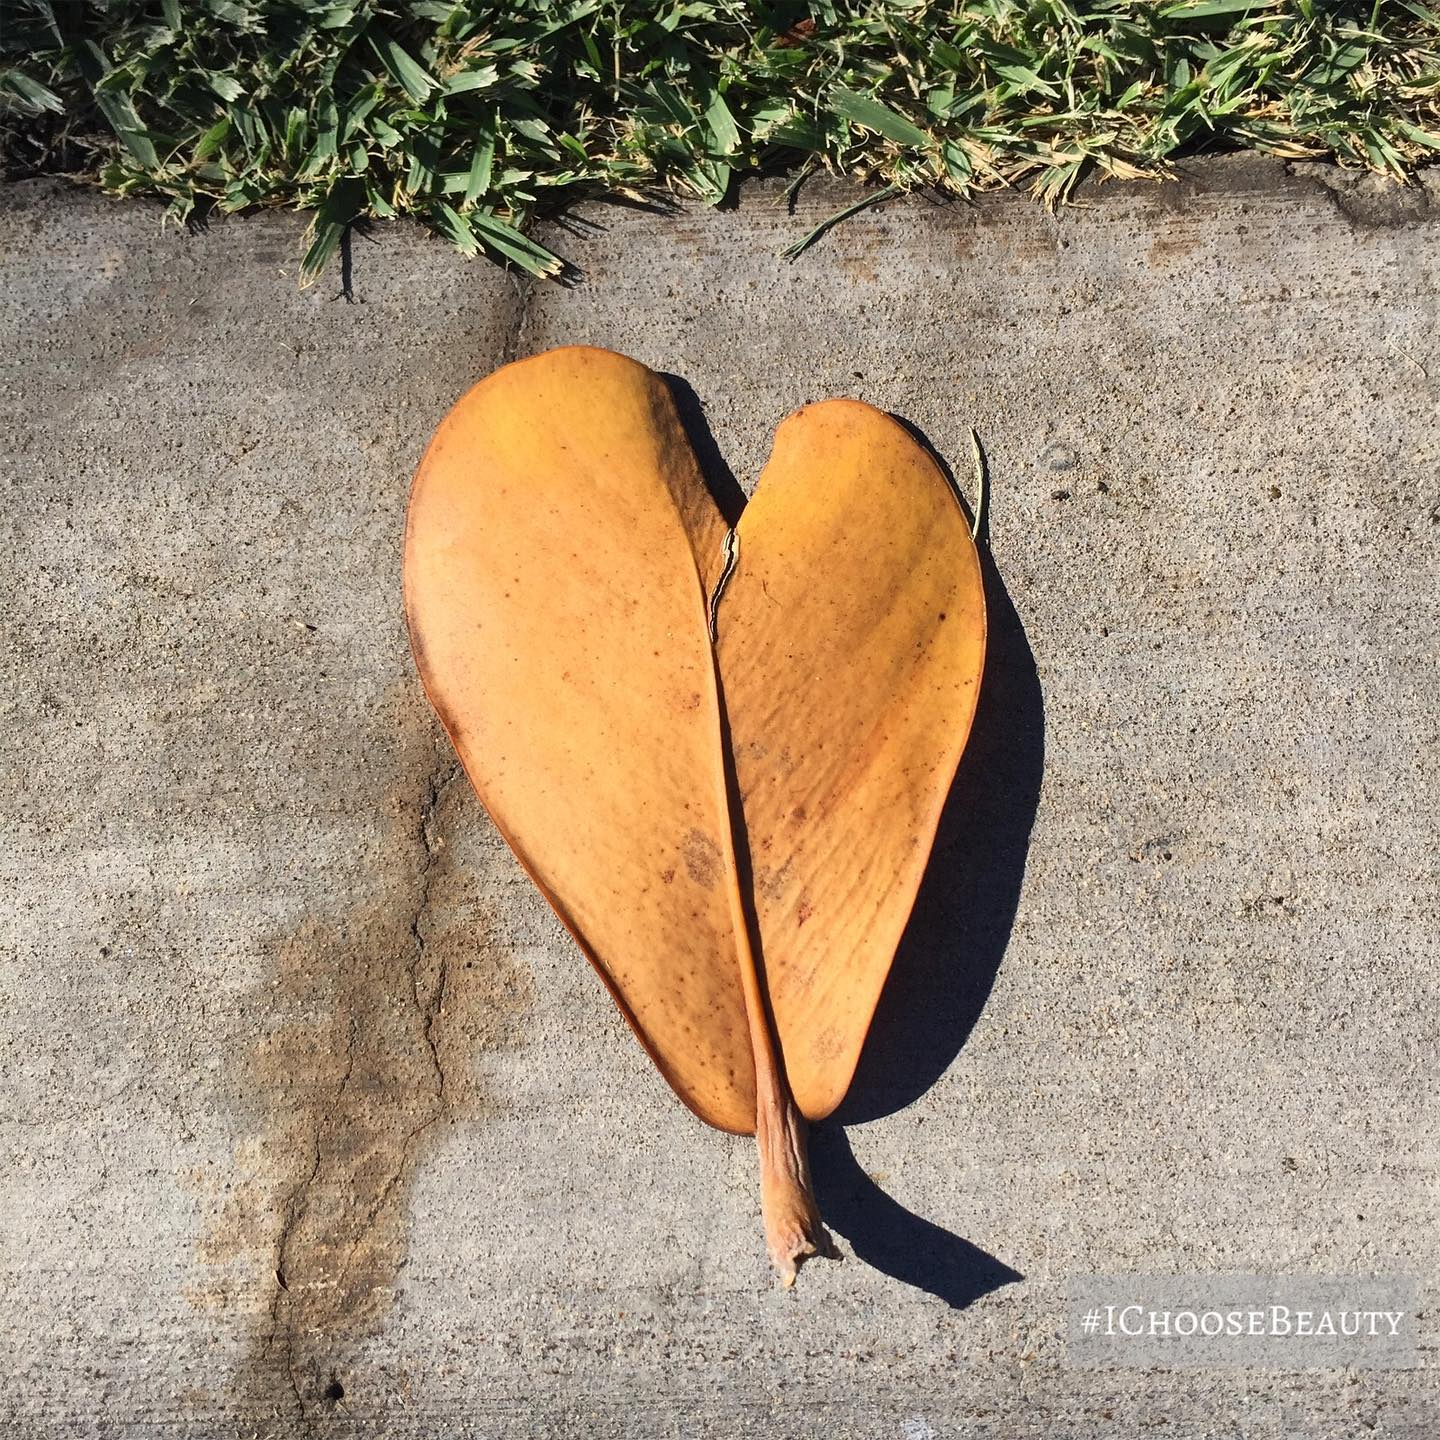 Thanks for the love, little leaf! 🧡 #ichoosebeauty Day 2570